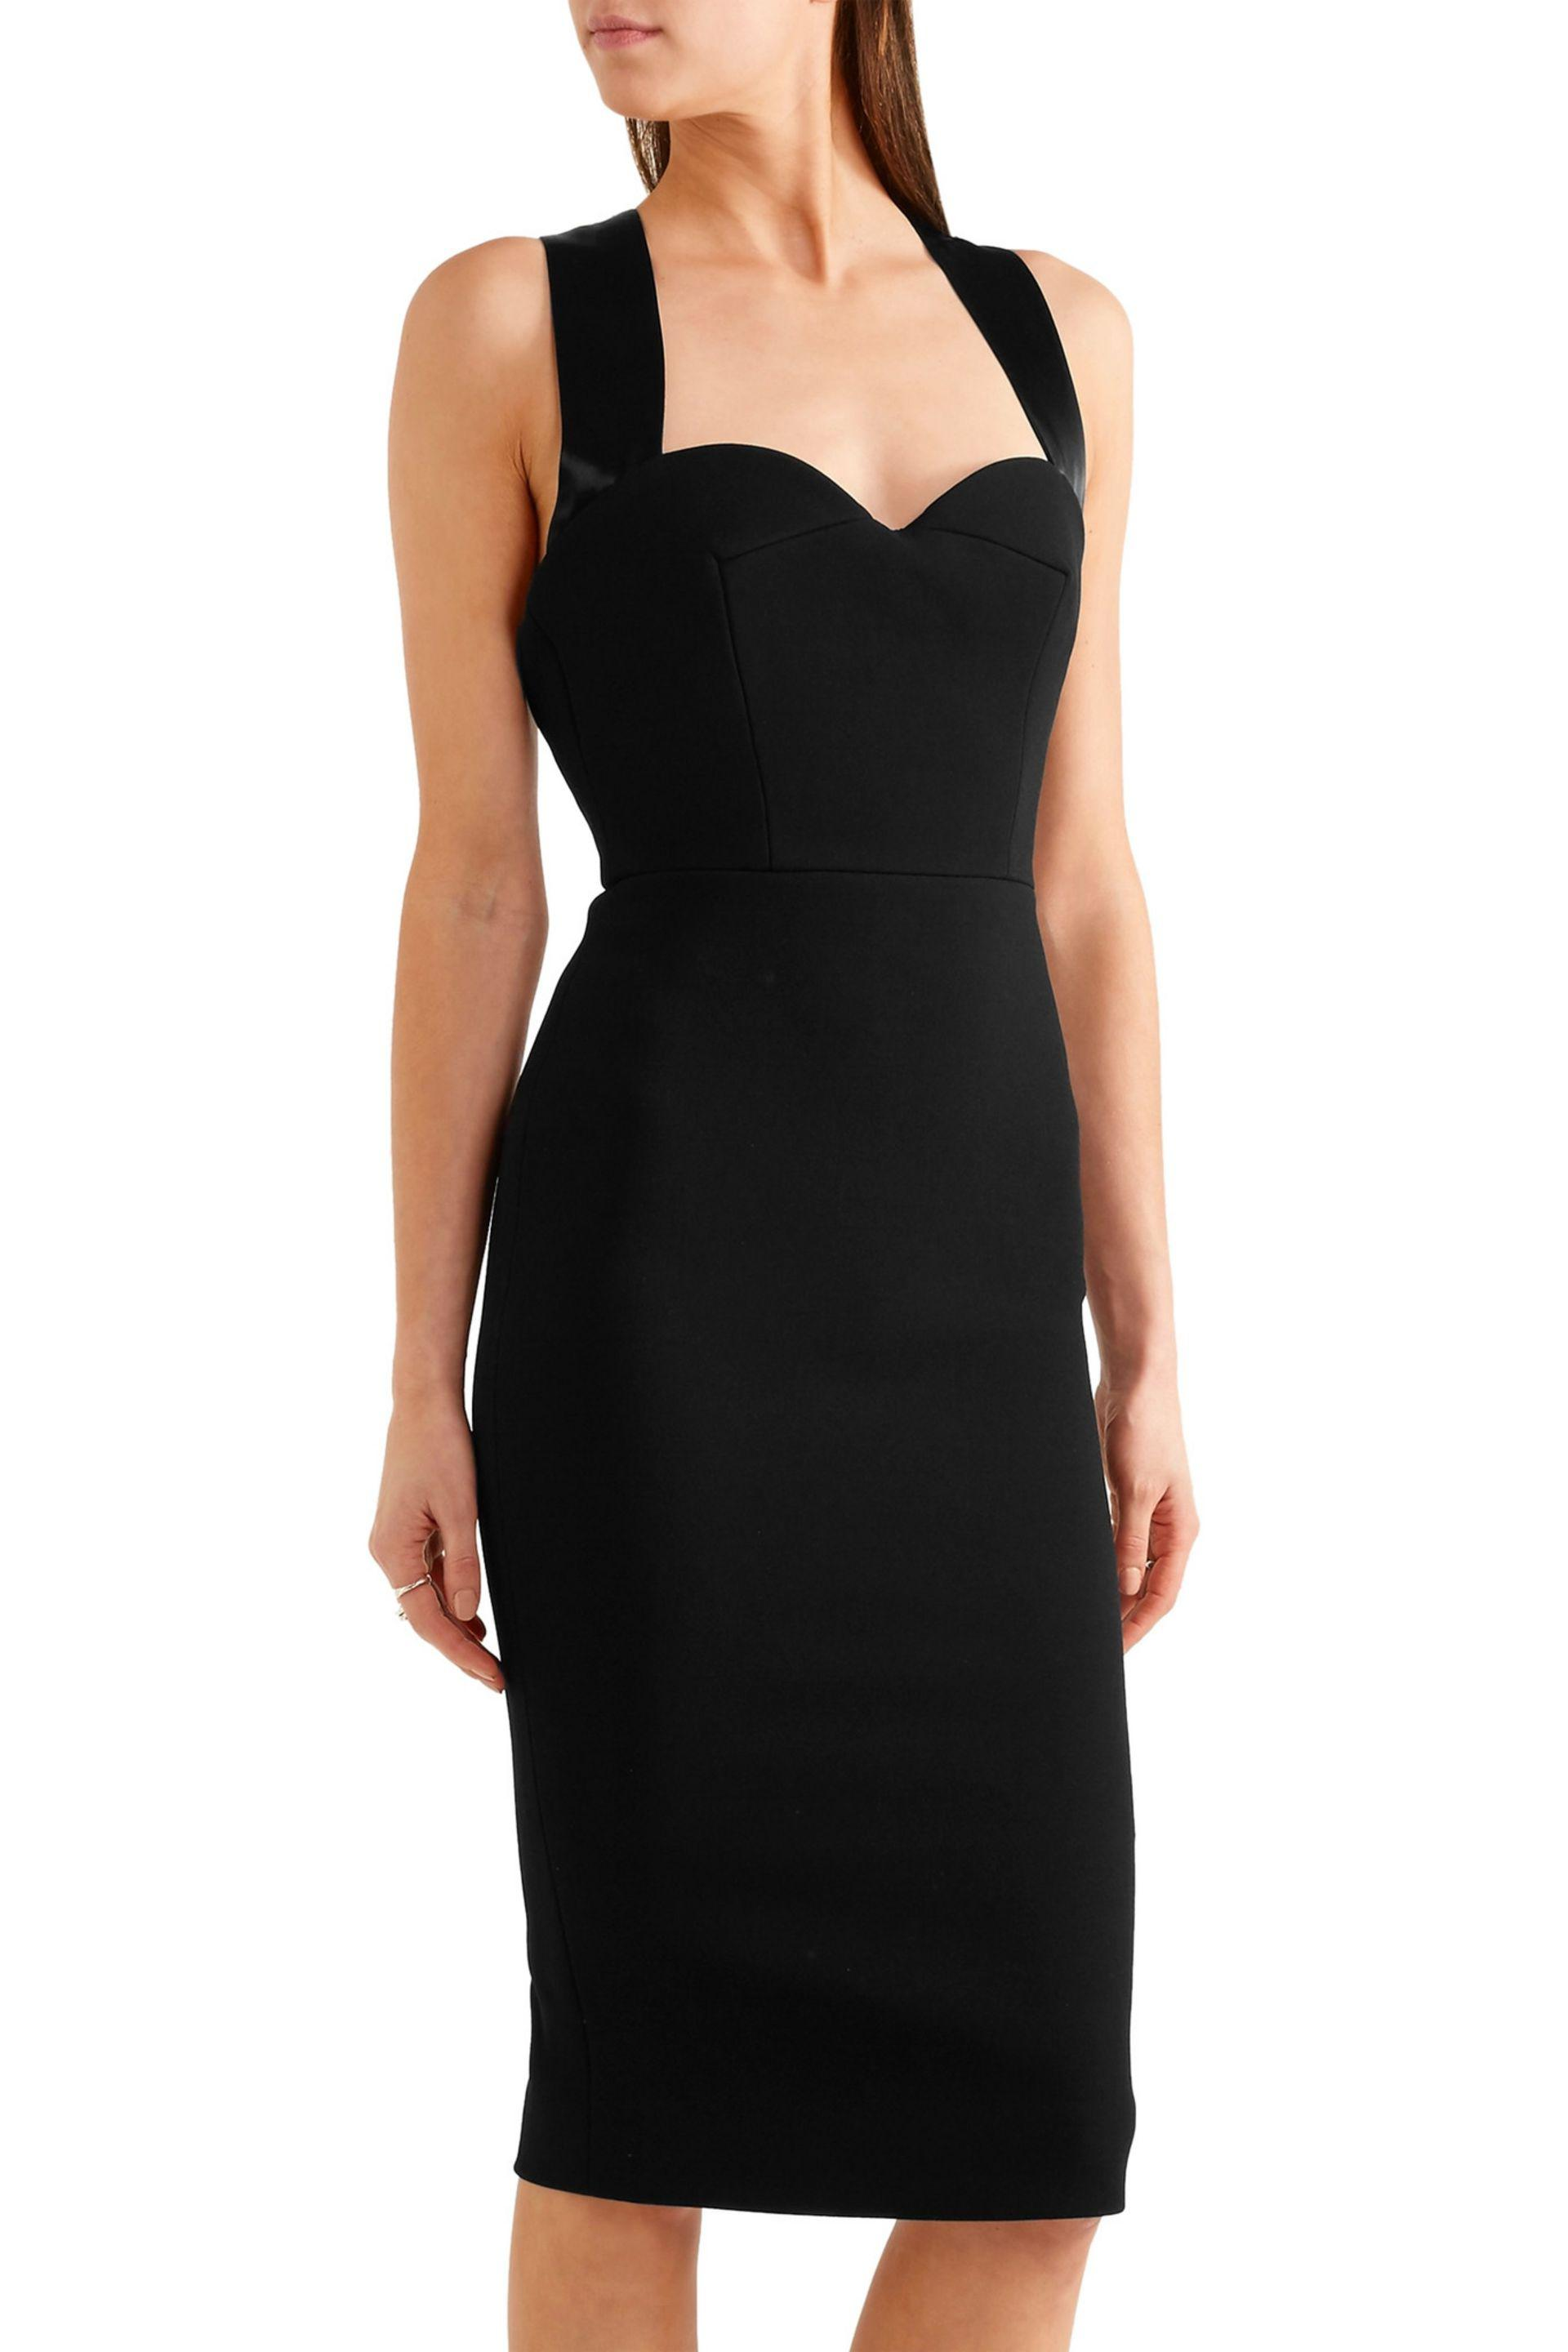 High Quality For Sale Satin-trimmed dress Victoria Beckham Purchase Online Sale Order For Sale Footlocker Free Shipping Manchester Great Sale GM6oNuhY